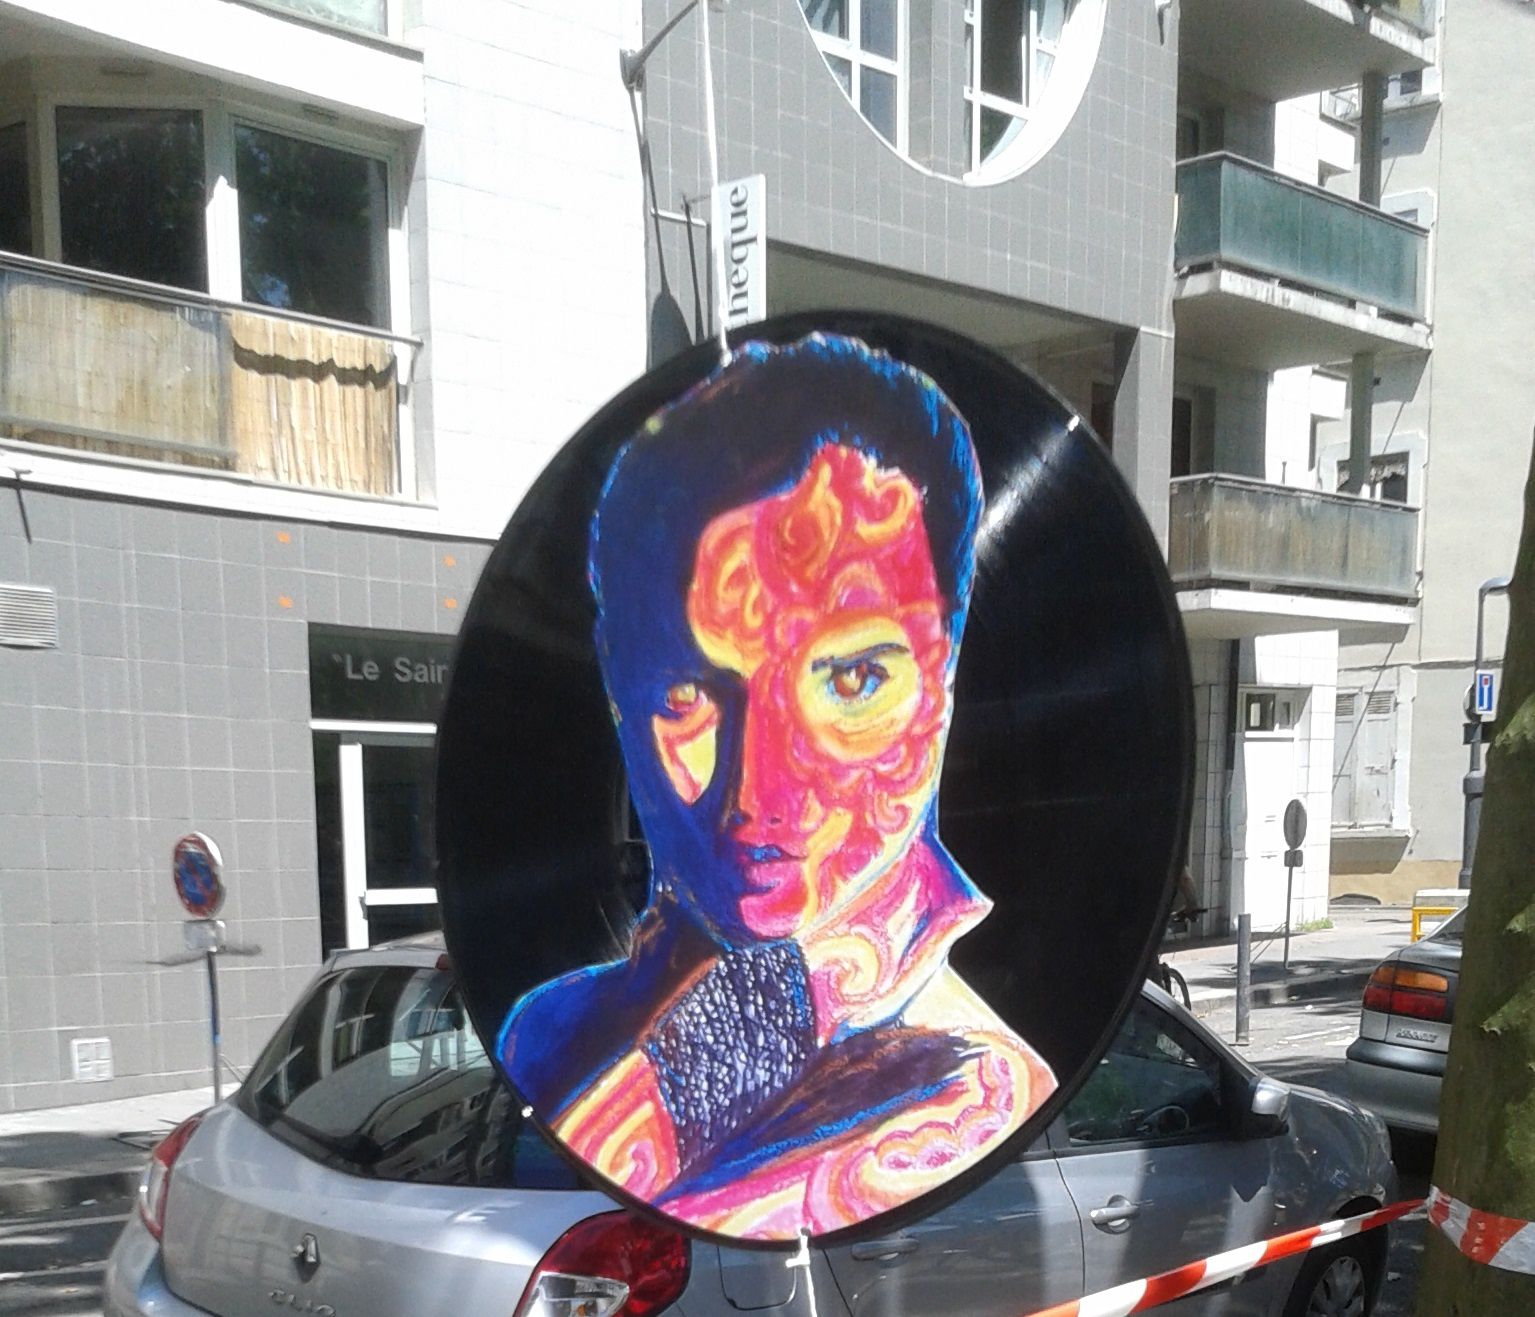 L'expo collective Vinyles Folies (place St Bruno)